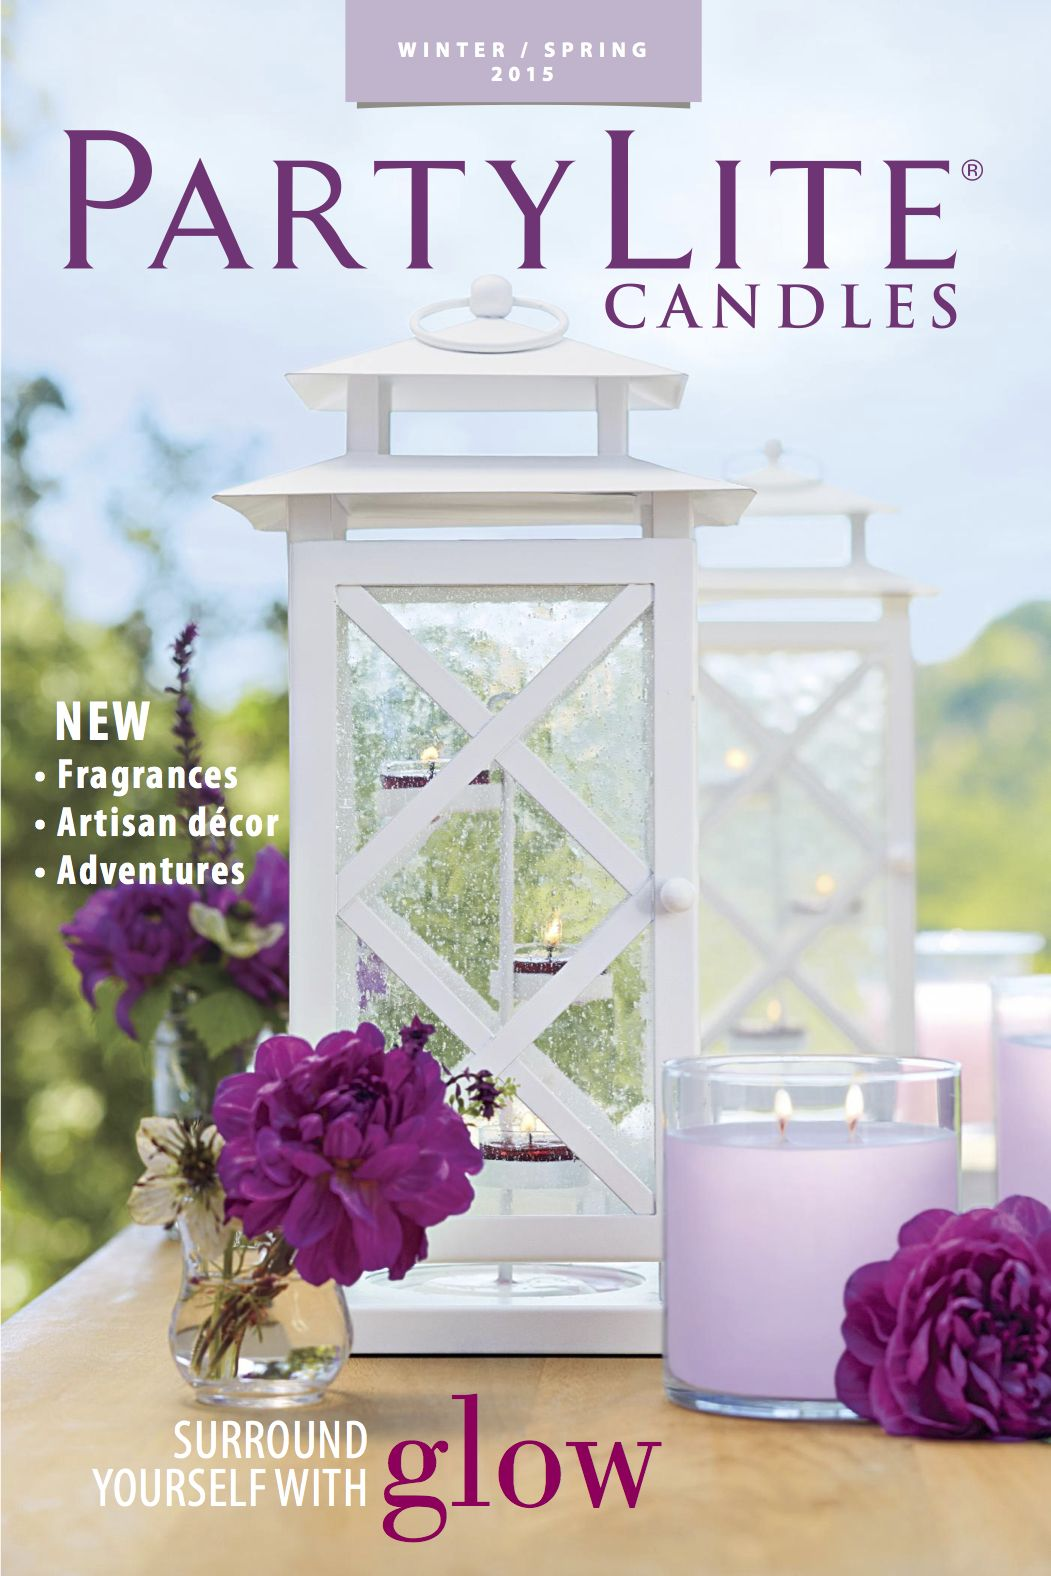 Winter/Spring catalog is now available online or at Parties!